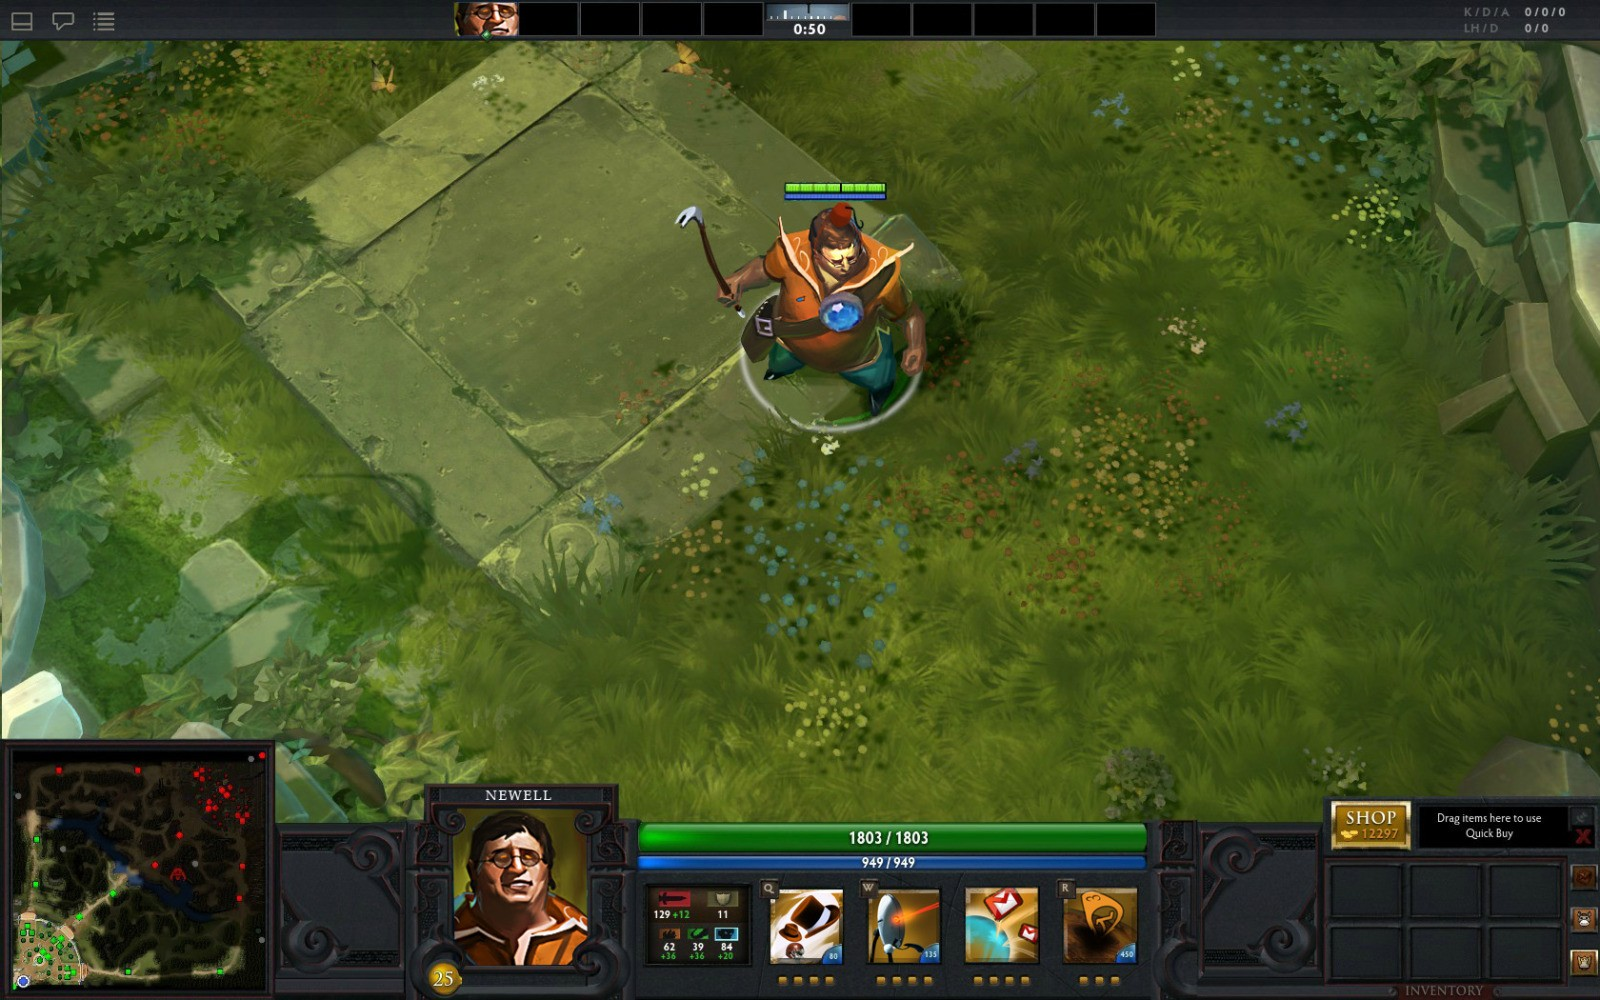 gabe newell is a dota 2 hero dota 2 gamereplays org